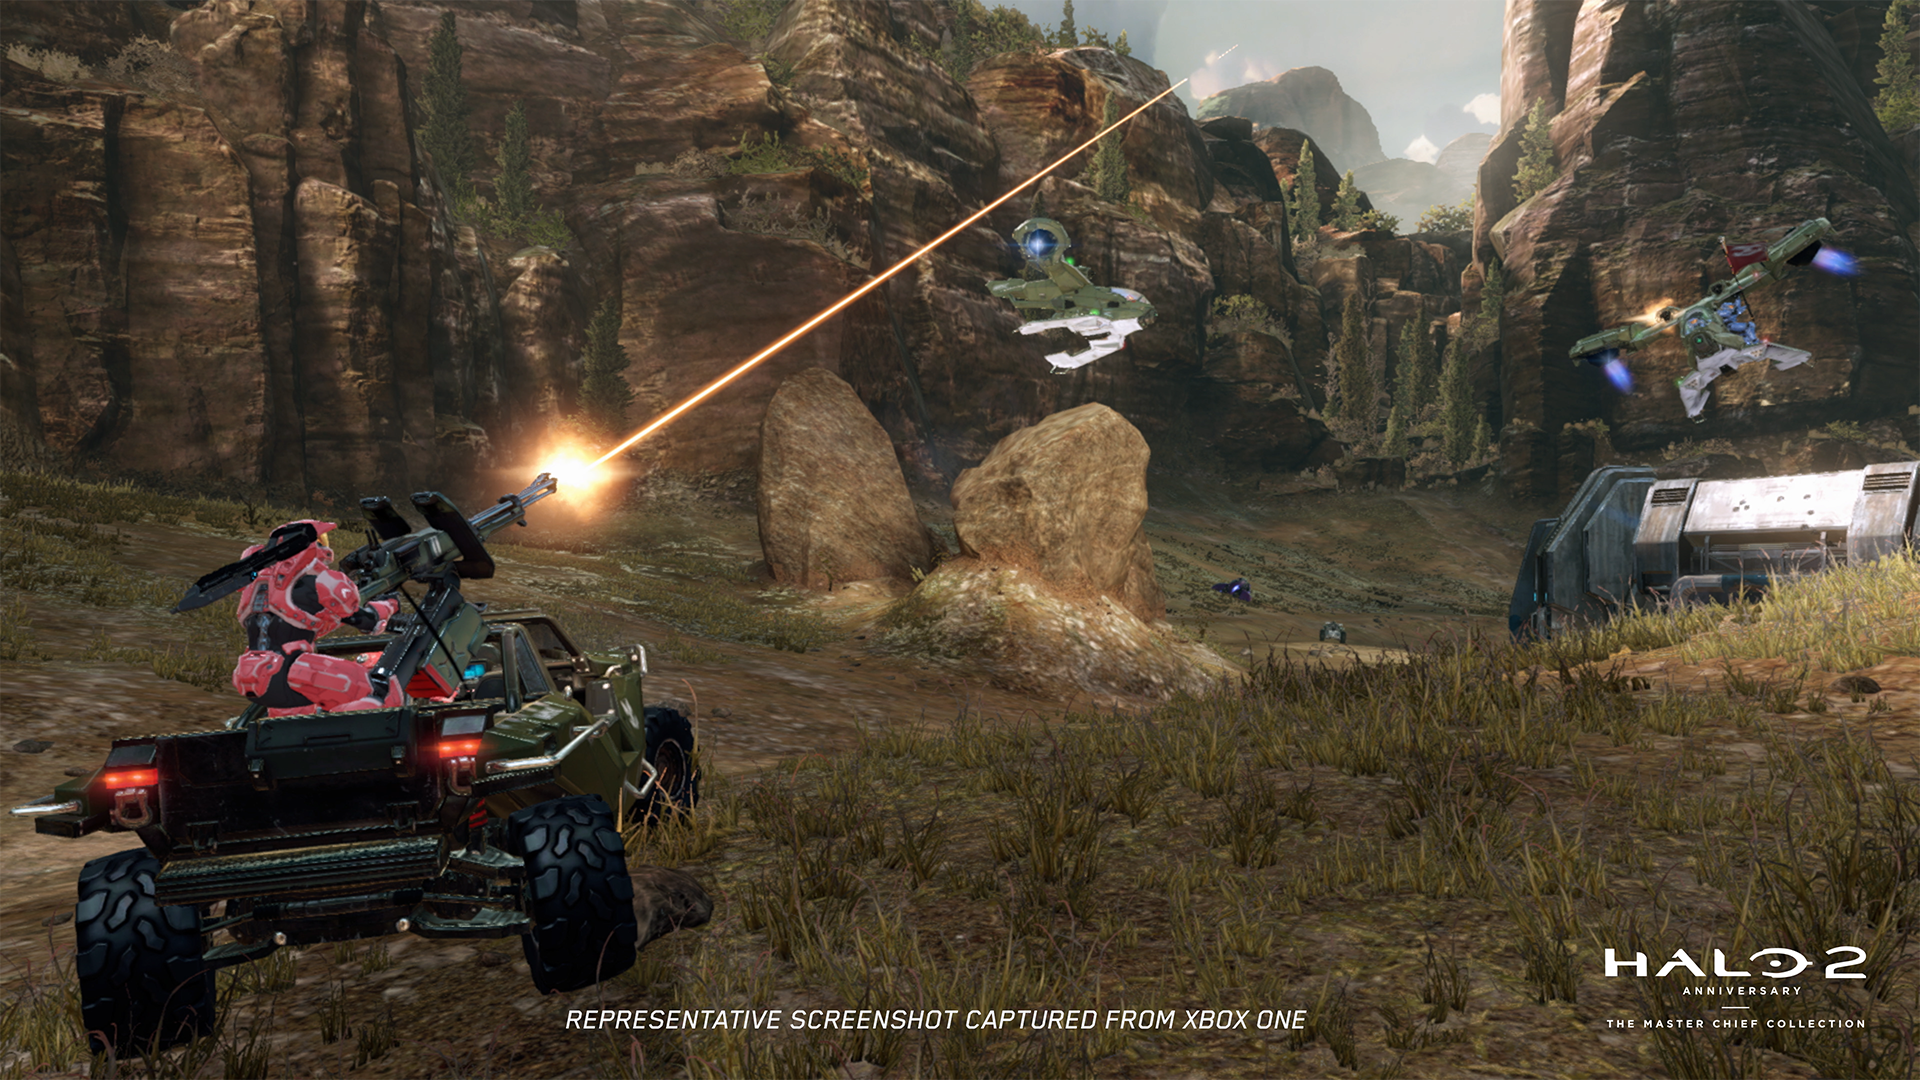 Halo-Master-Chief-Collection-2020_Halo2Anniversary_Multiplayer_02_Watermarked_1920x1080